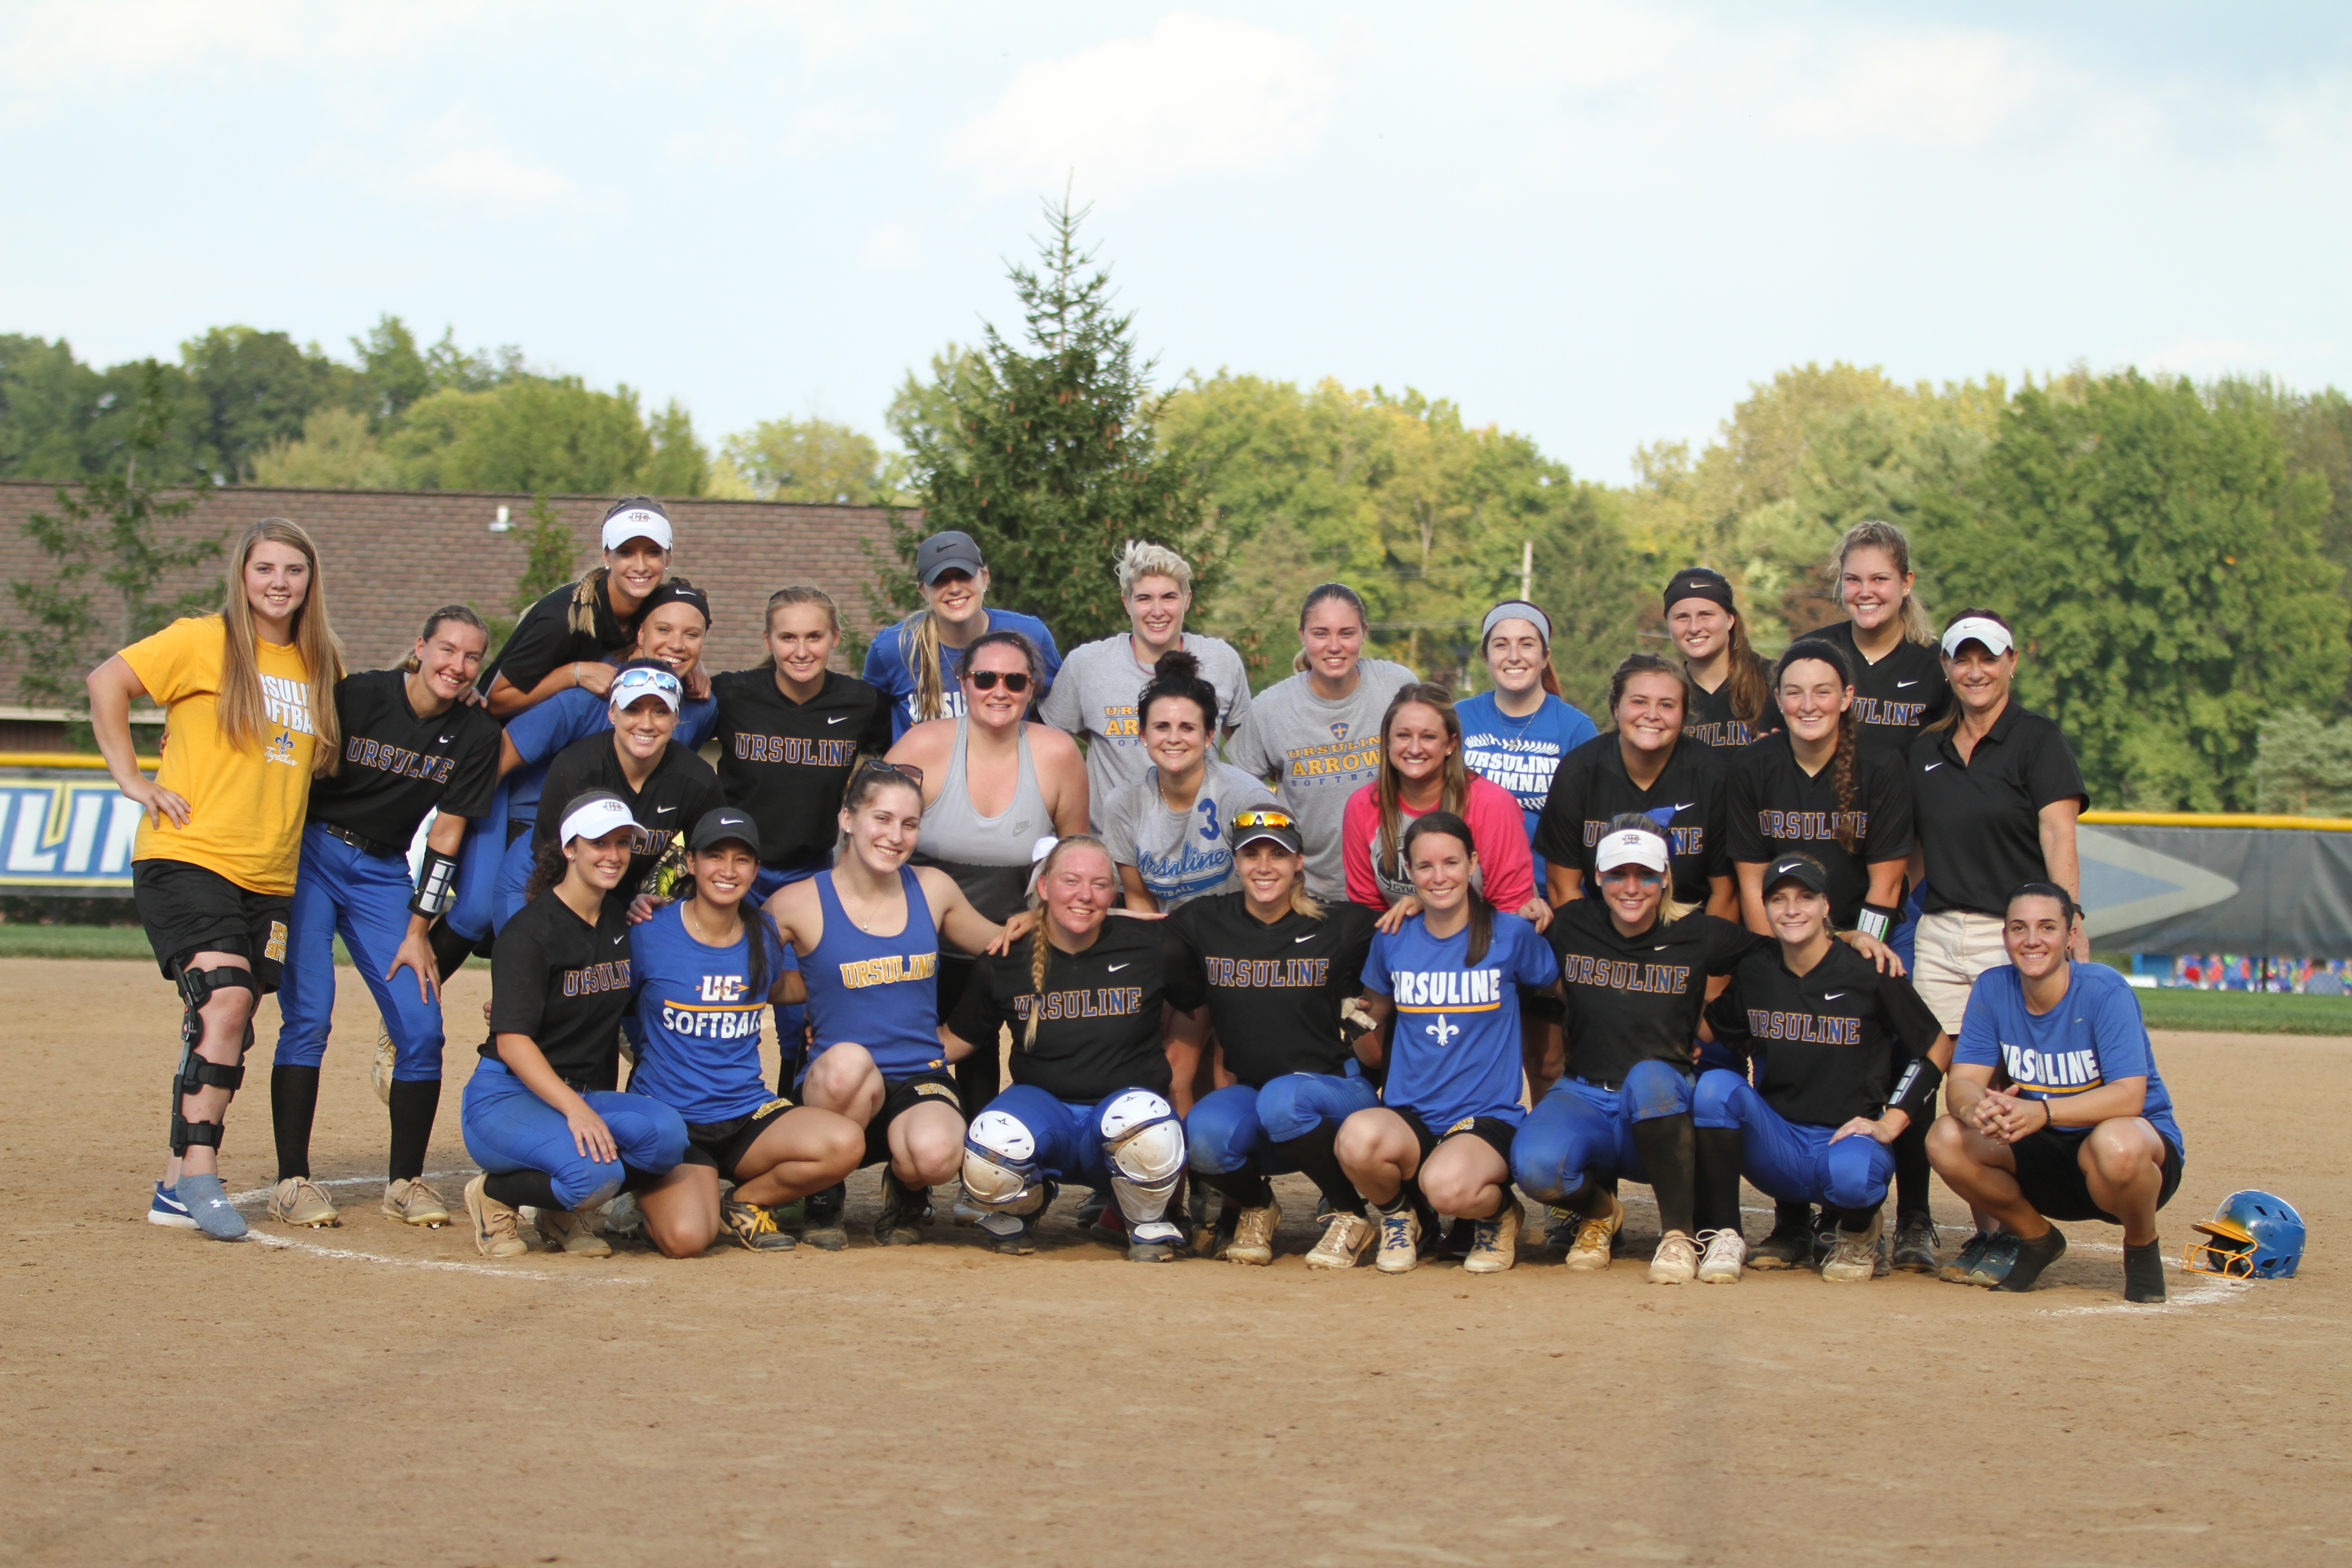 Current Softball Players with Alumnae